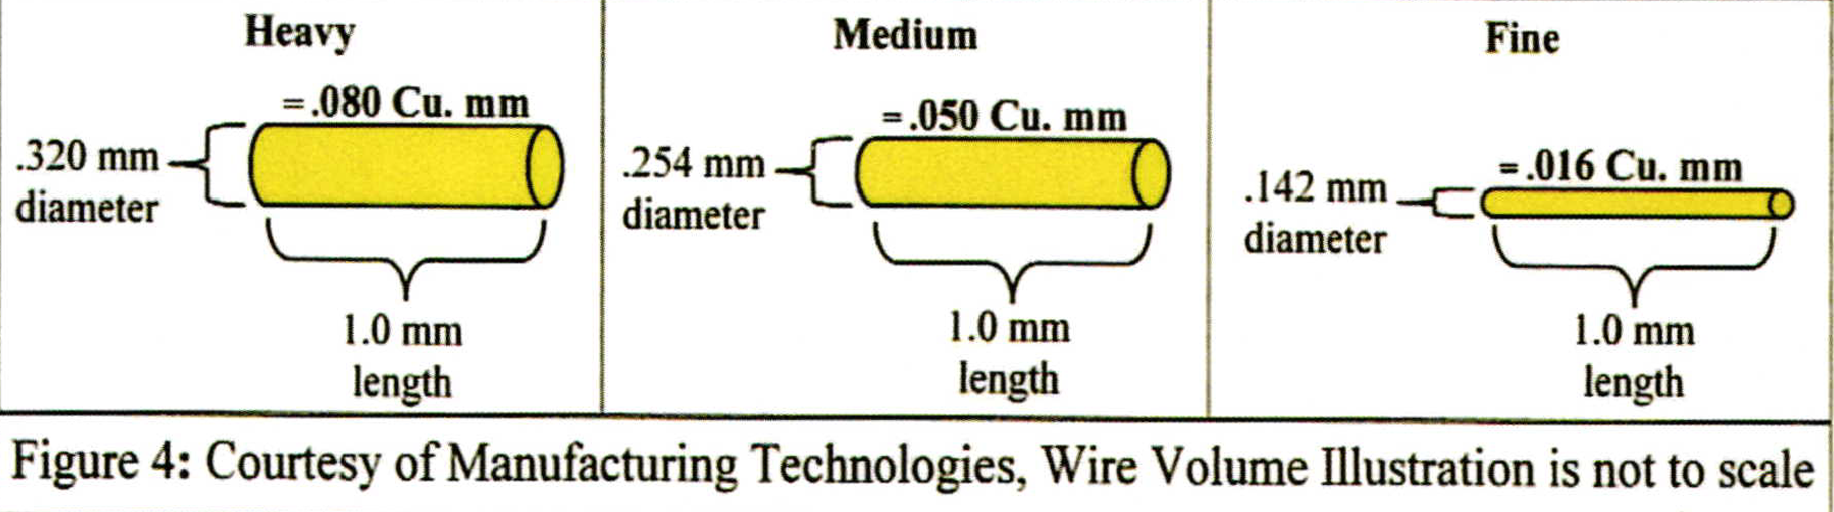 Laser Welding Basics Part 3 Ganoksin Jewelry Making Community Spot Wiring Diagram Sweet Technologies That Are Available As Options In Some Lasers Shown Figure Provide A Finer Focused Beam Over The Focal Plane